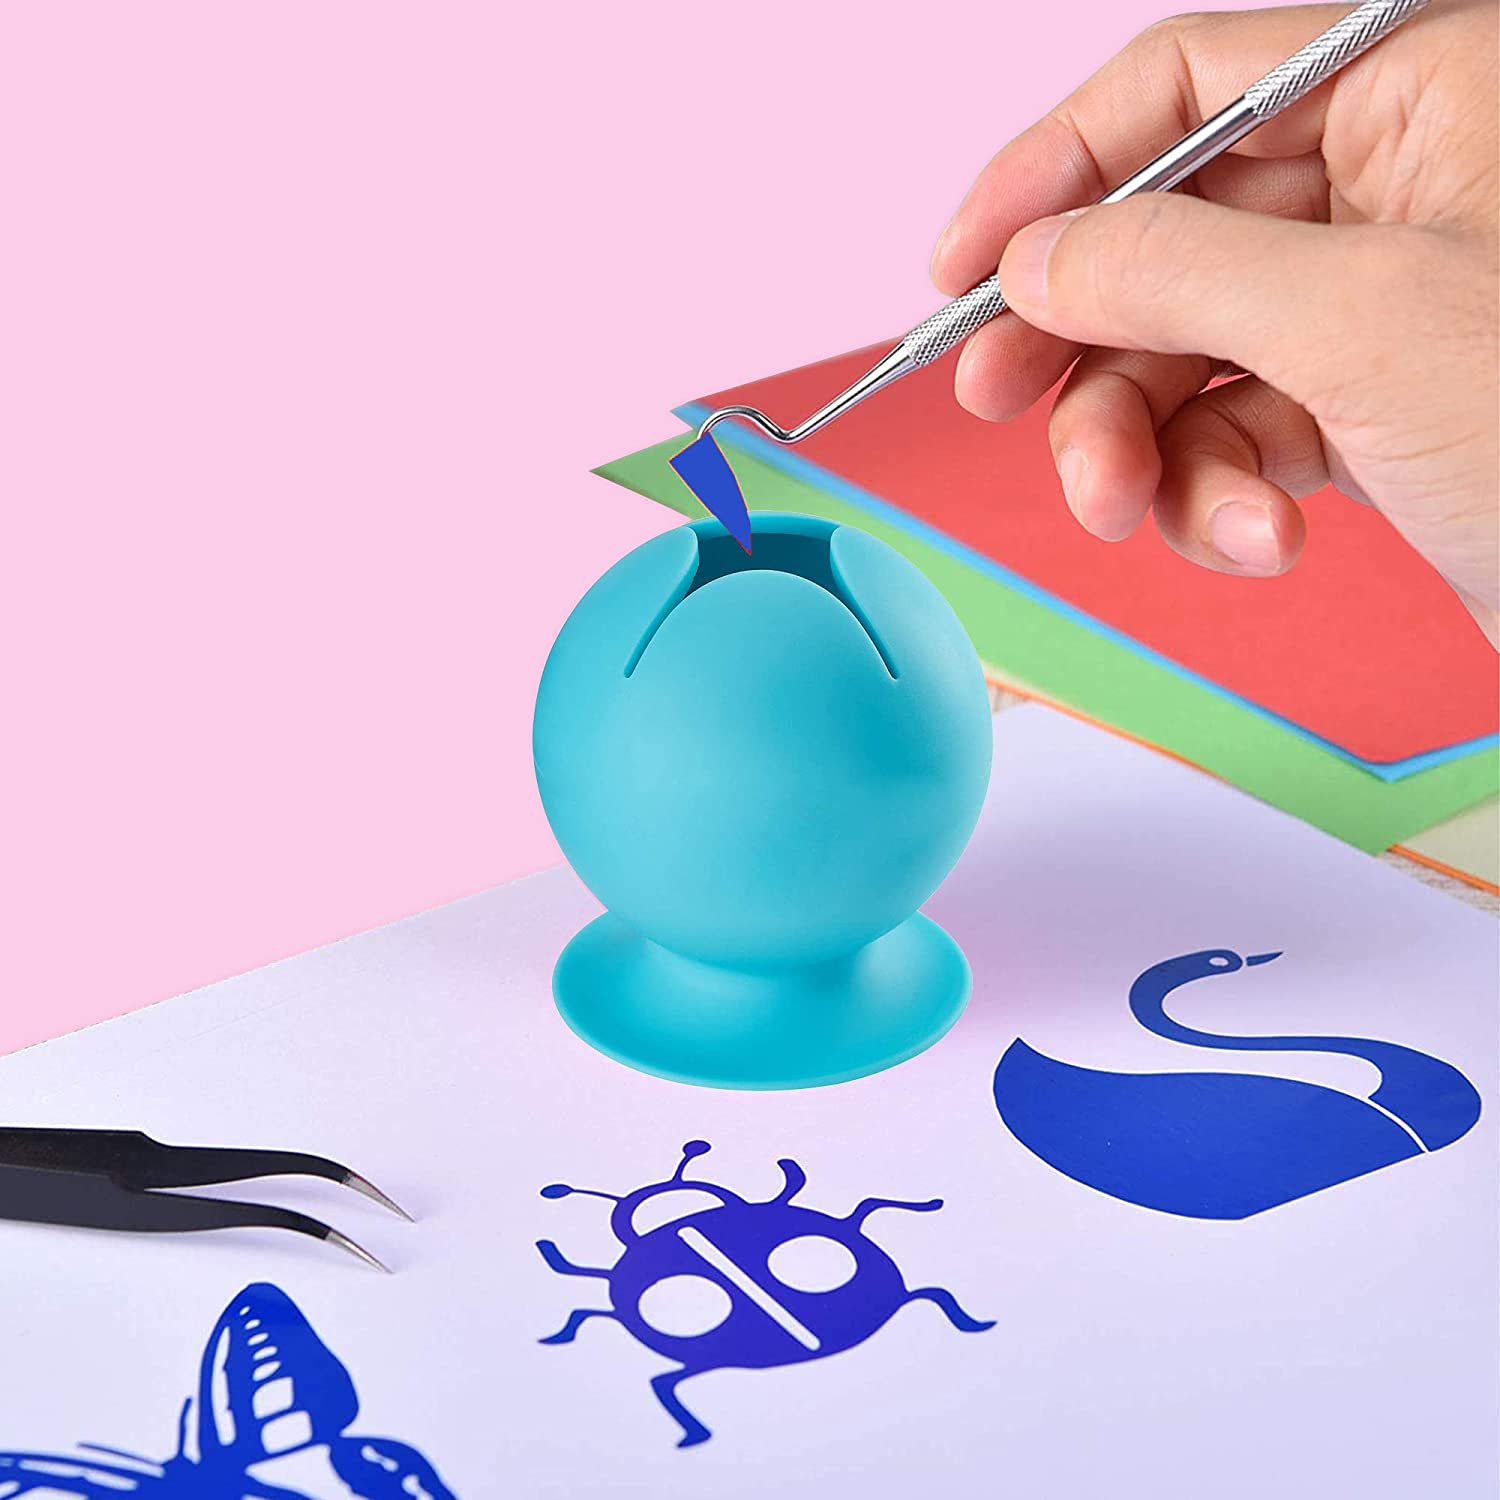 Soft Silicone Suction Can OURIZE Suctioned Vinyl Weeding Scrap Collector